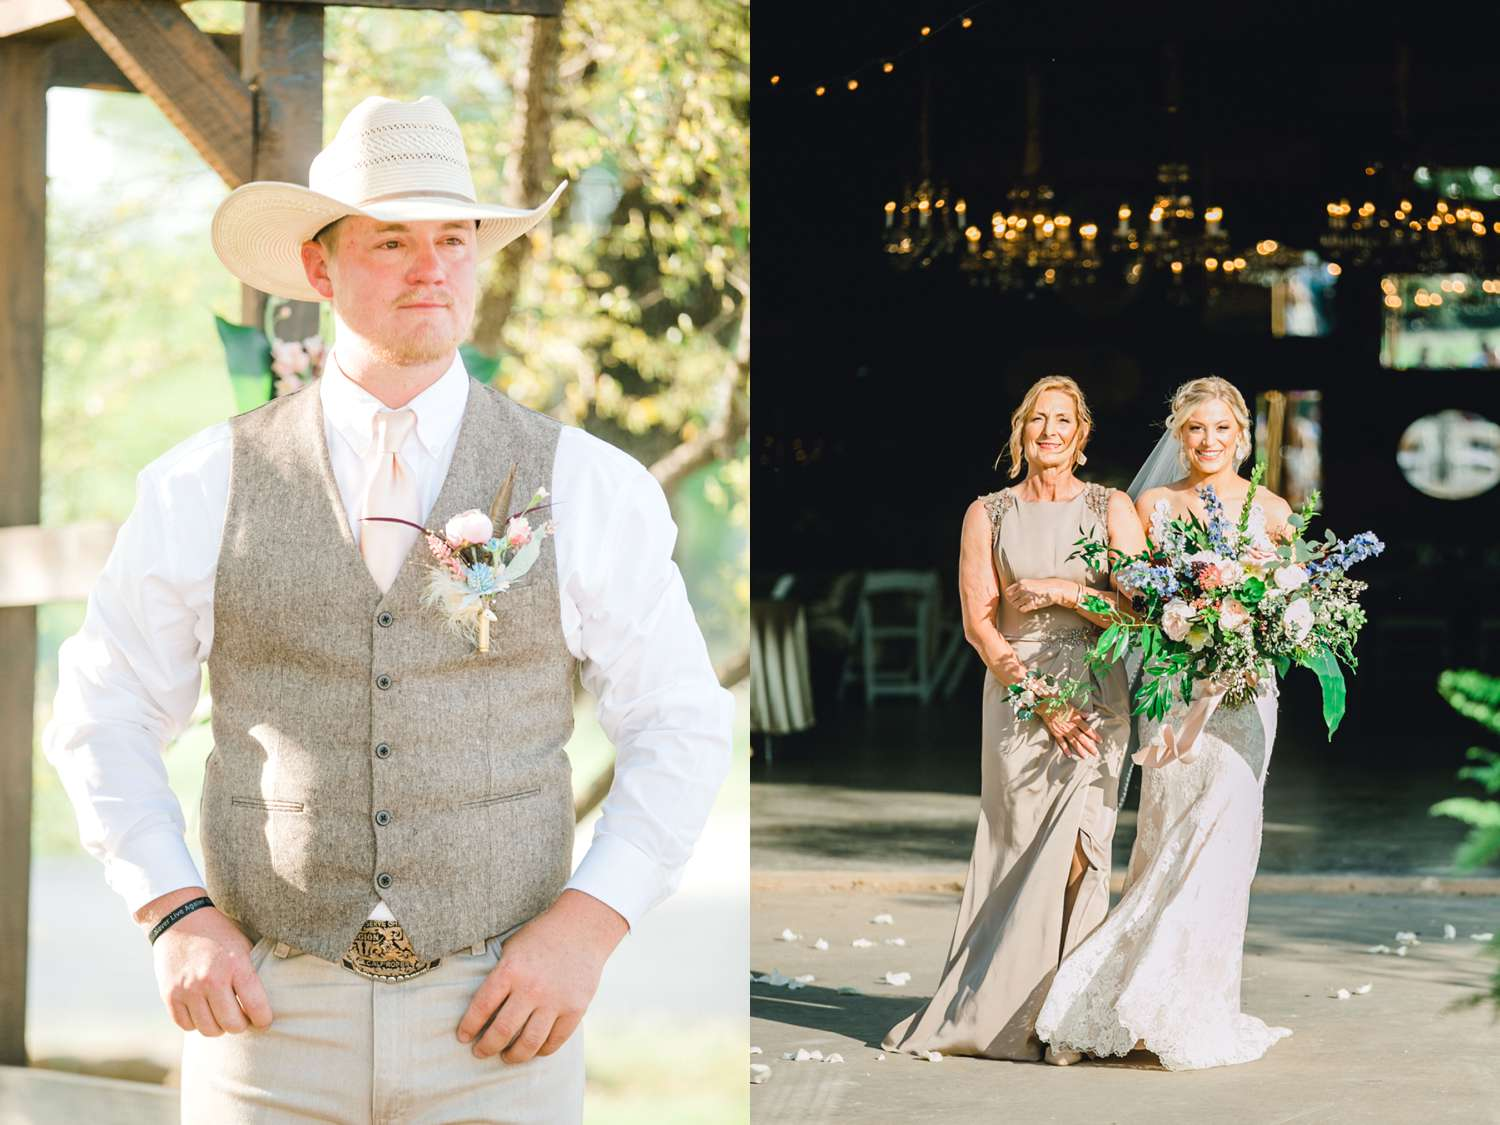 SARAH+TREVOR+BADGETT+SPARROW+CREEK+GRAHAM+TEXAS+ALLEEJ+WEDDINGS_0055.jpg